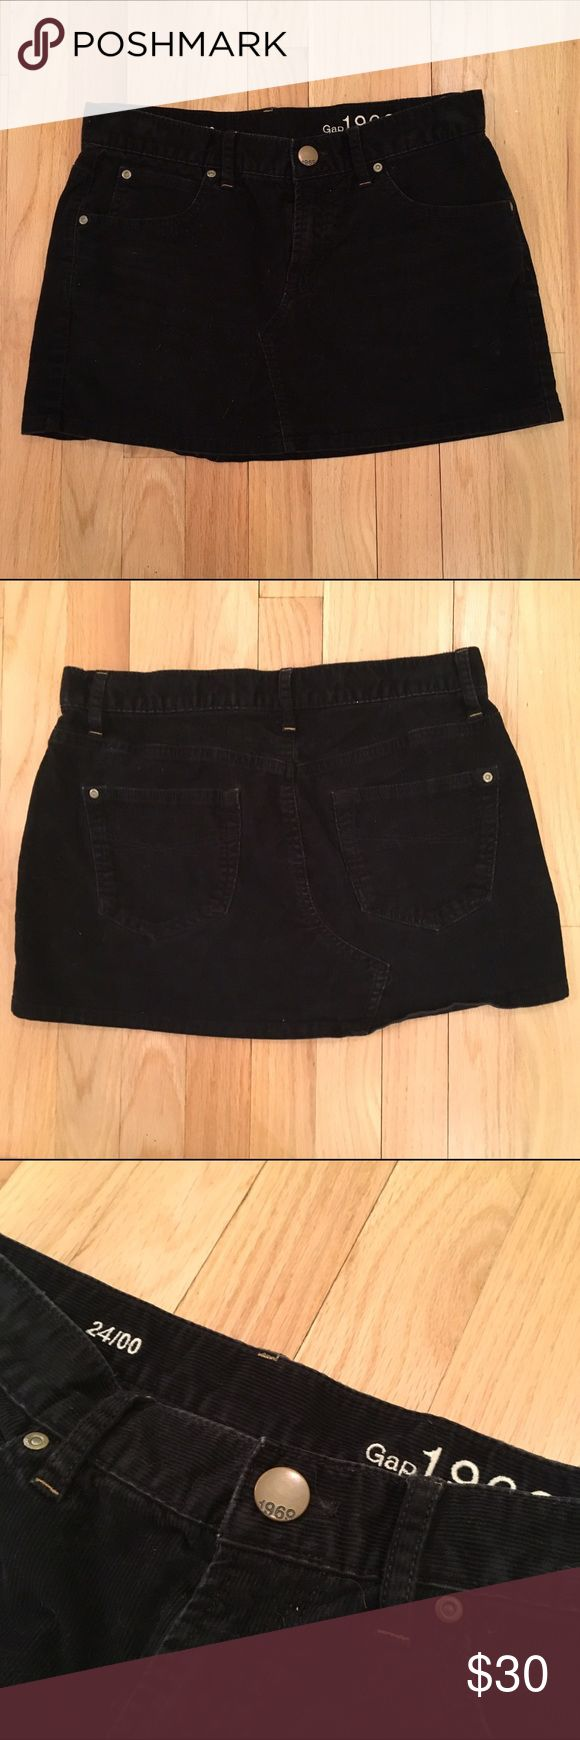 """Gap corduroy micro mini skirt -- Size 24/00 Adorable corduroy hip-slung micro mini skirt by Gap in black. Size 24/00. Sits low on hips. Total length 12"""". So cute with boots! GAP Skirts Mini"""